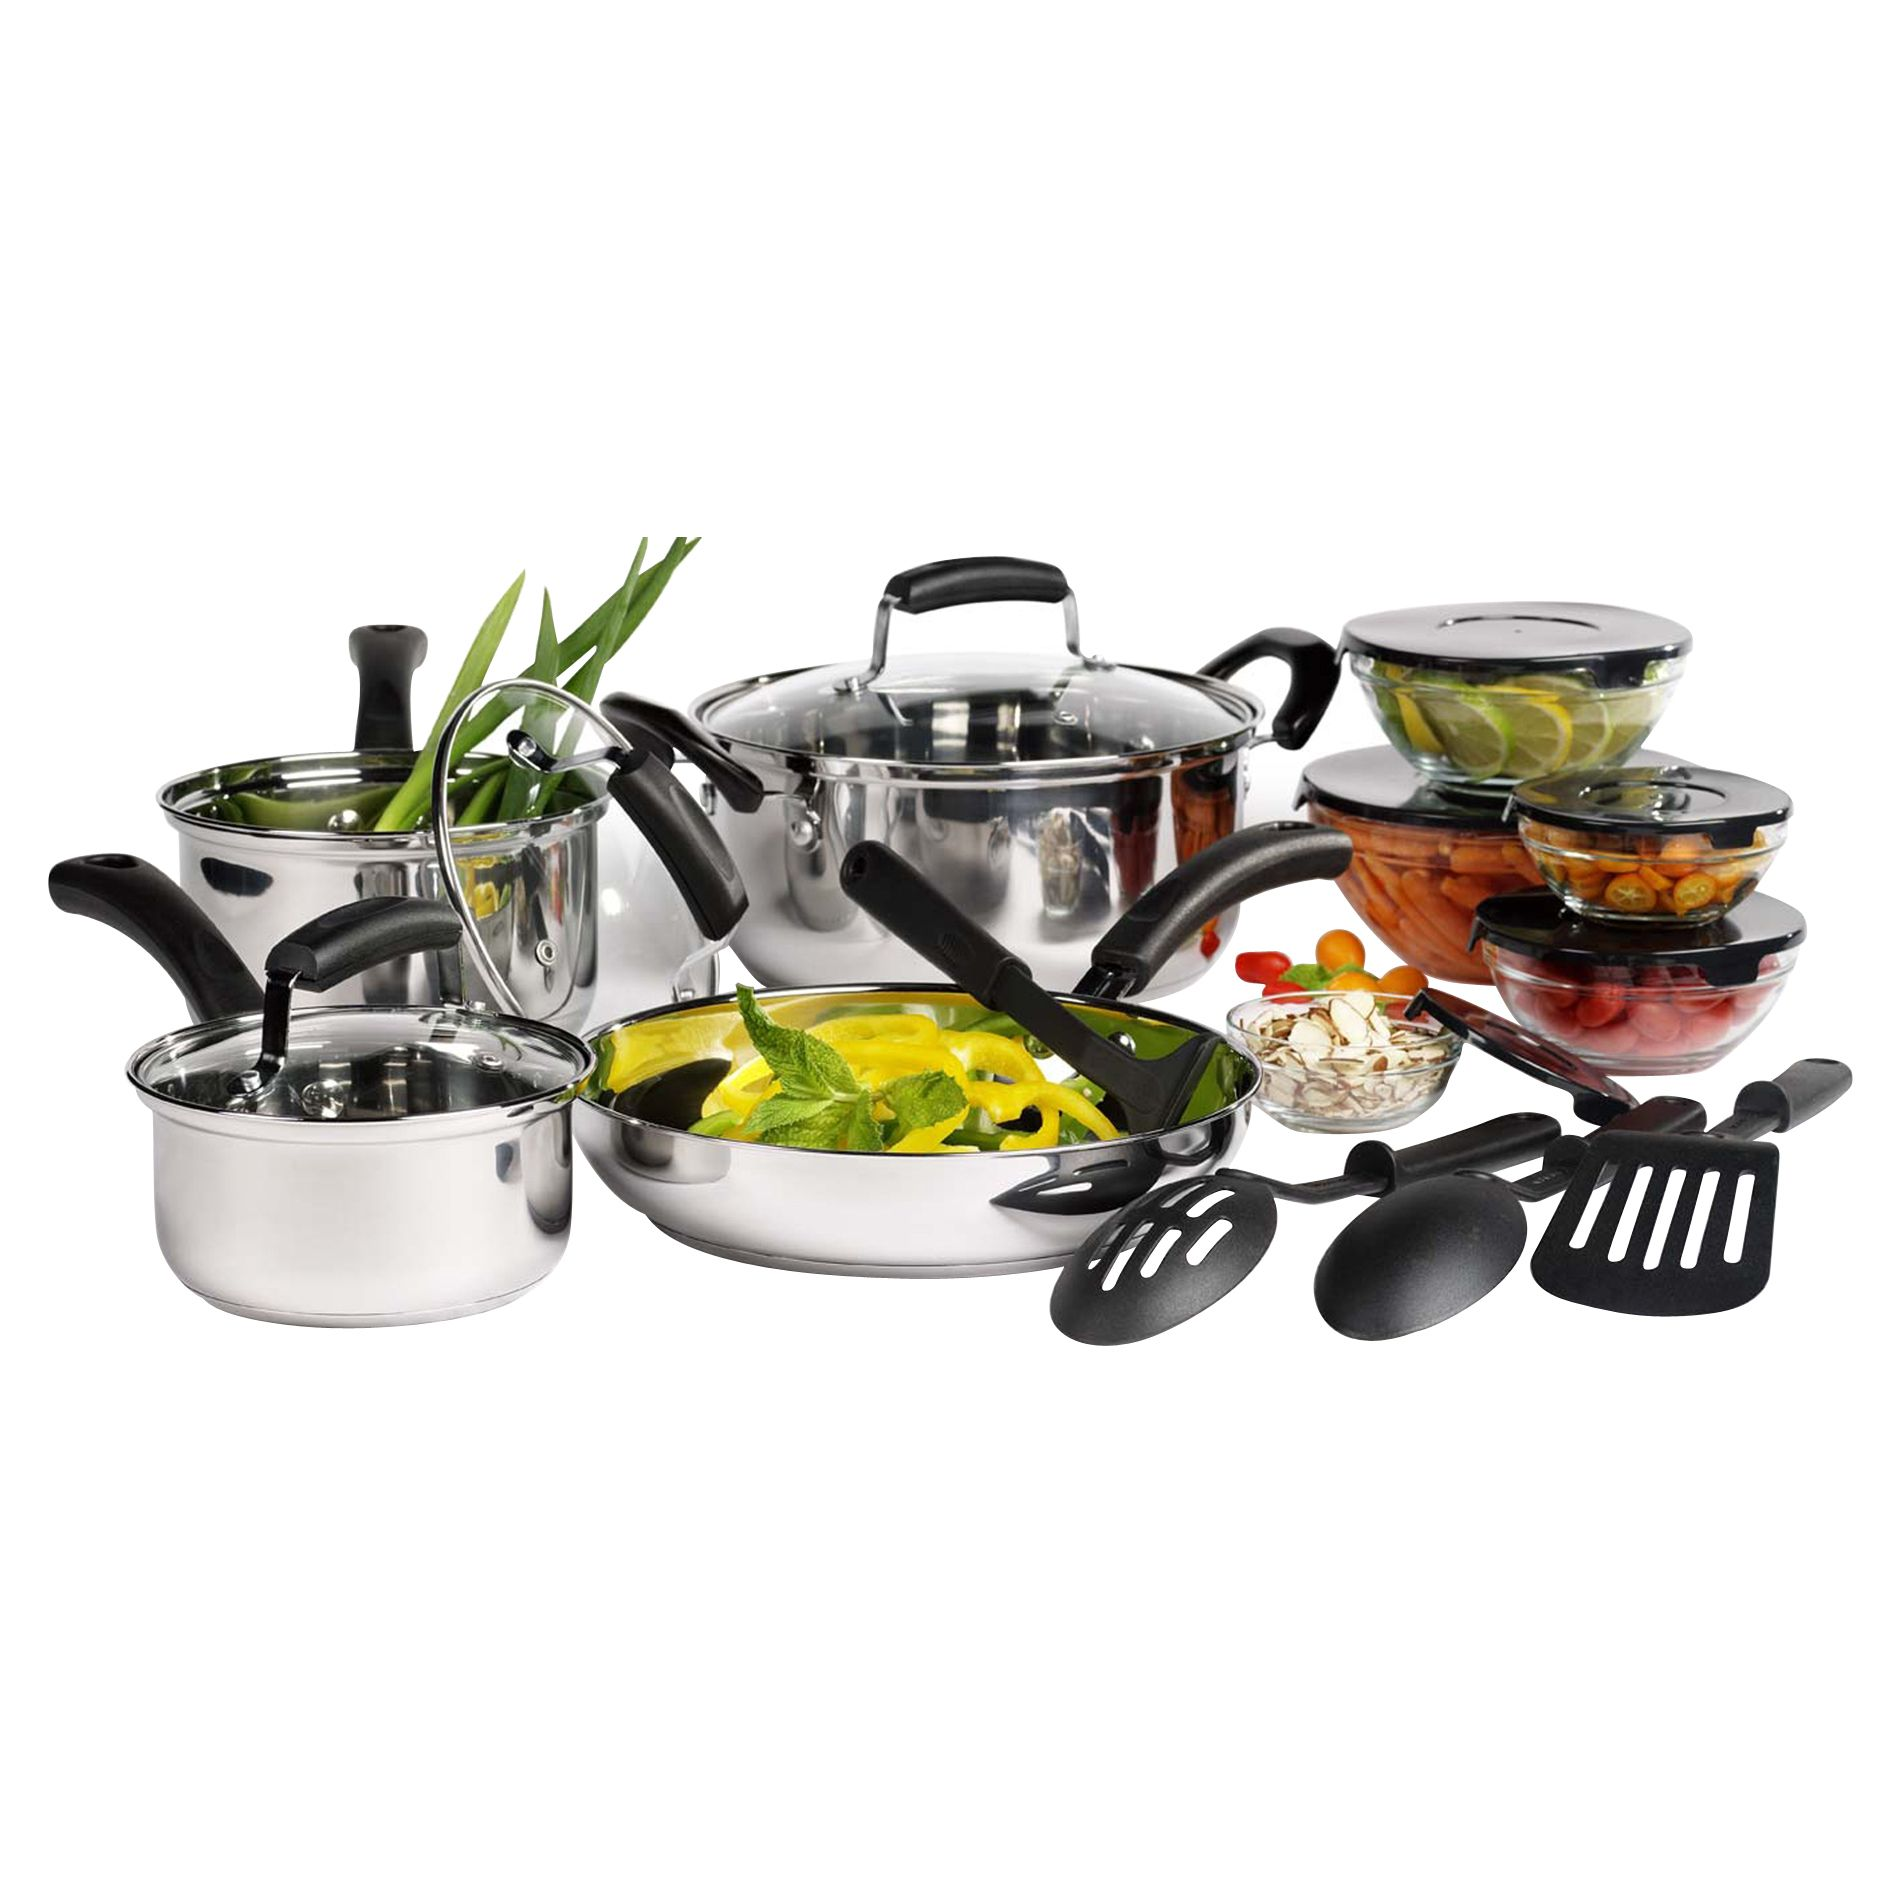 Basic Essentials 16pc Stainless Steel Cookware Set - Home